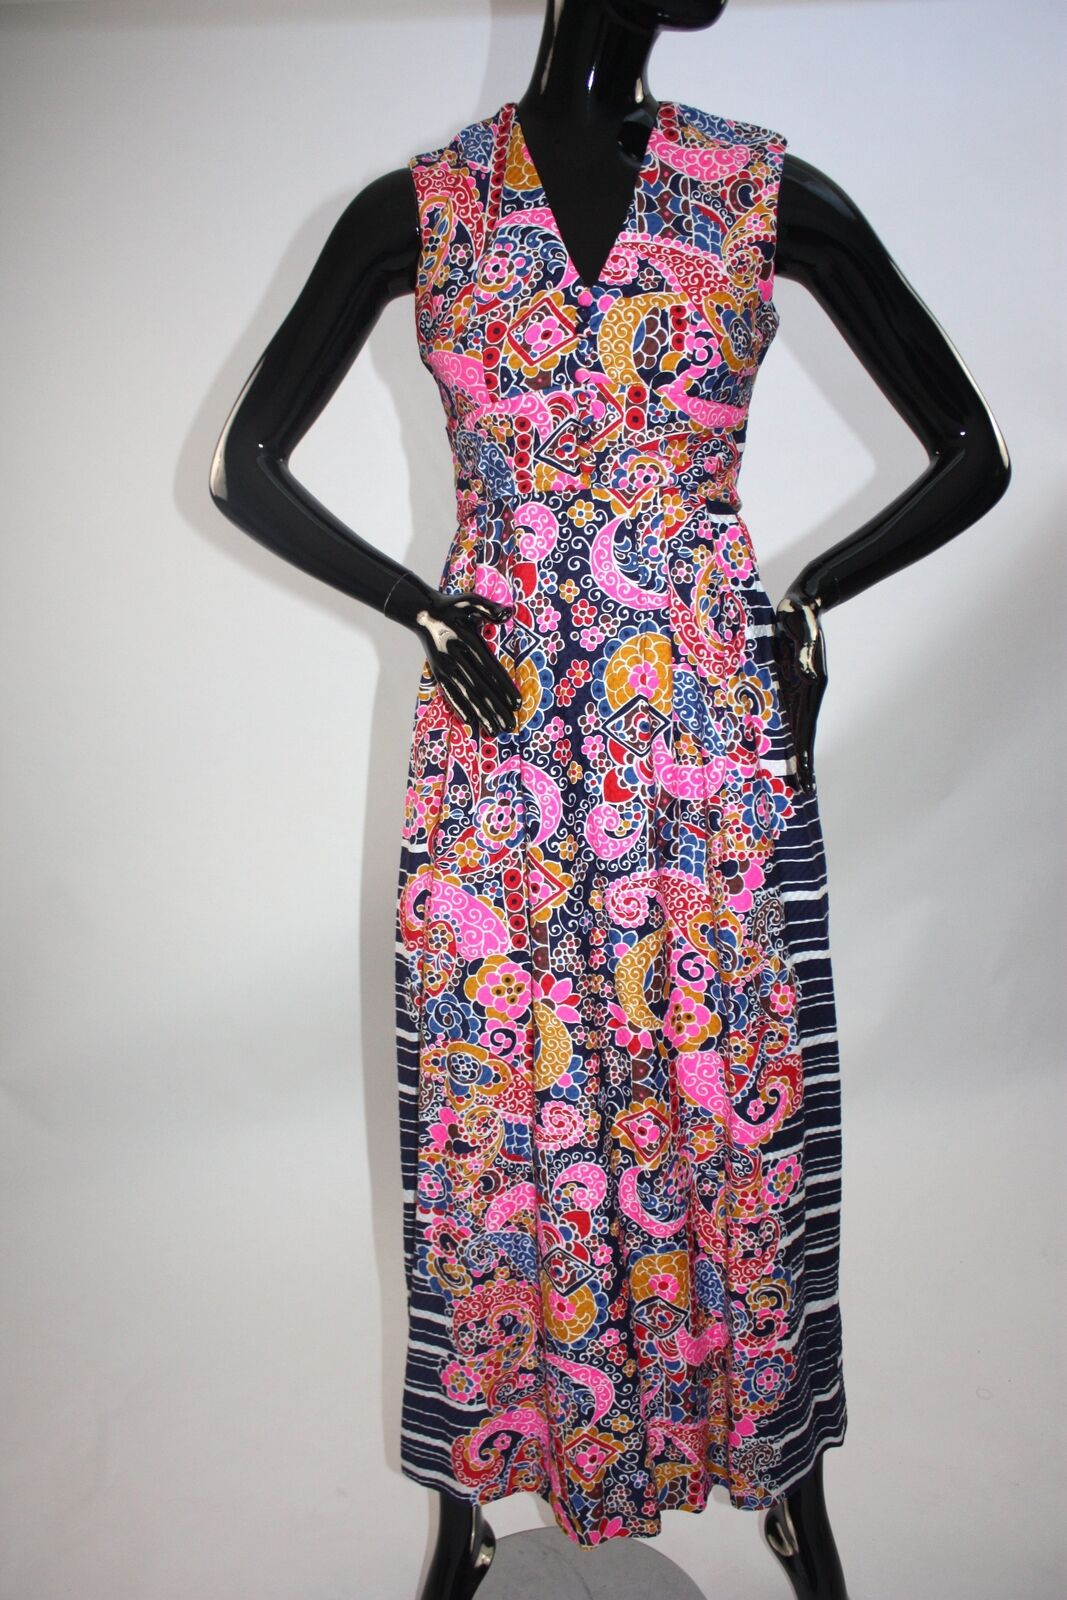 Vintage 1970s Psychedelic print maxi dress - image 1